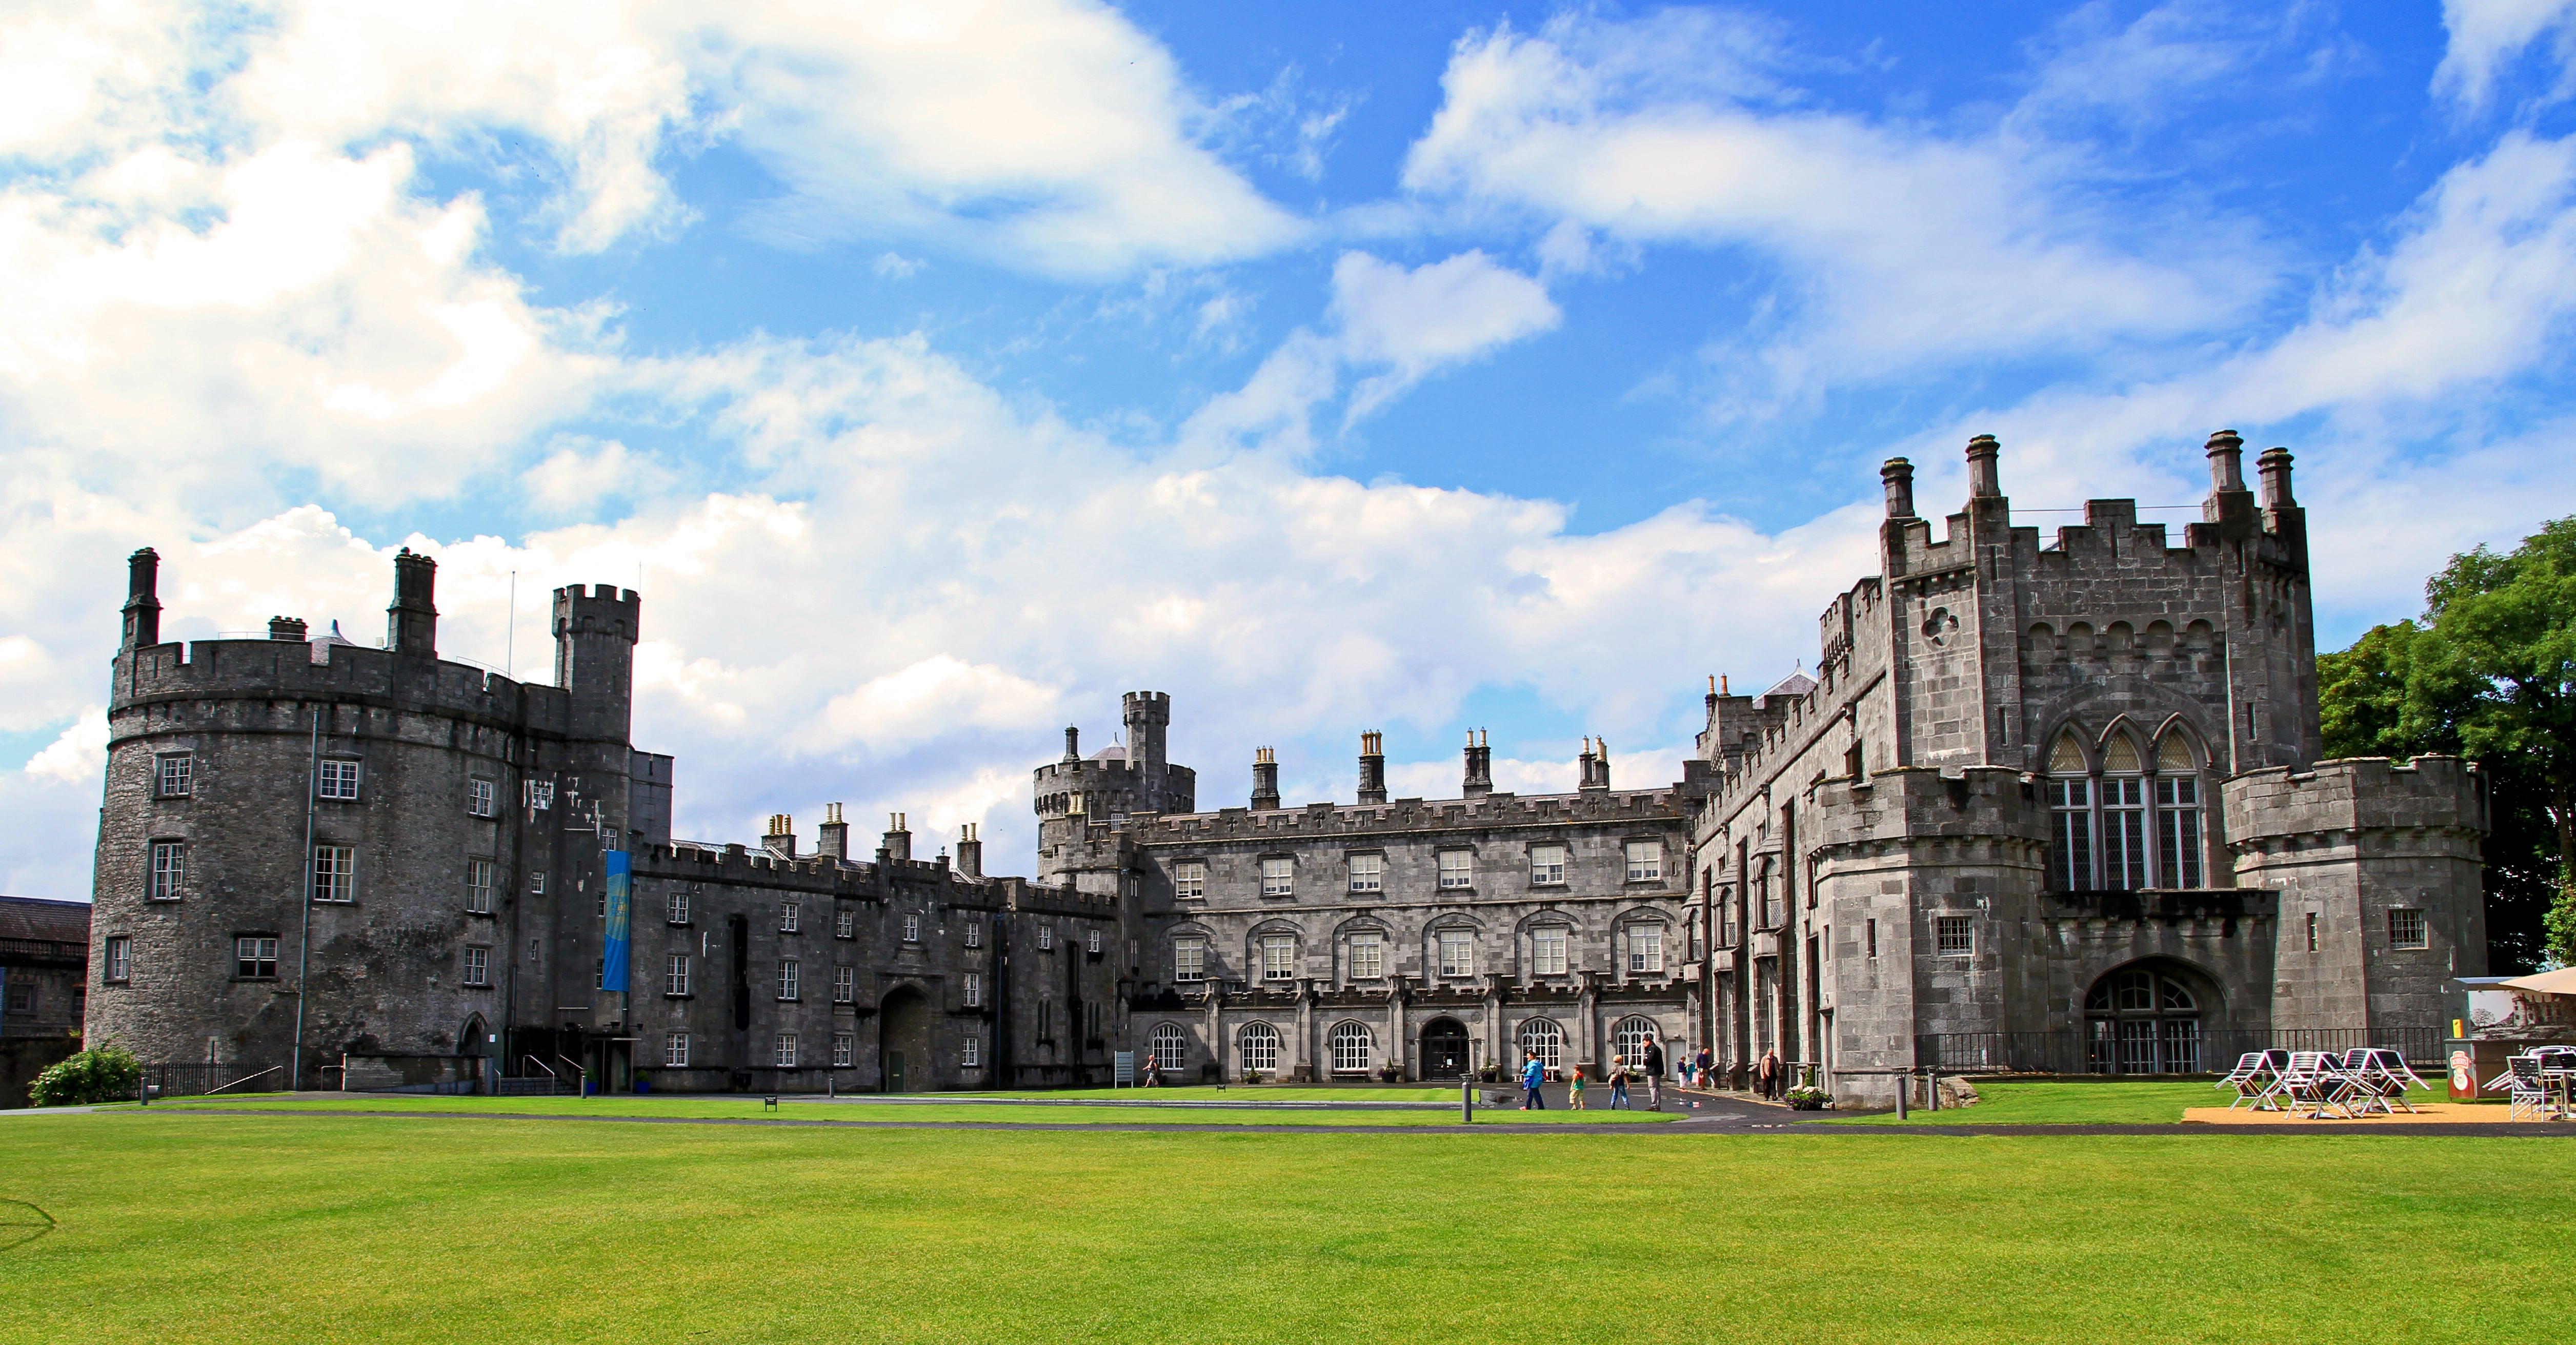 Visiting Kilkenny Castle is a great thing to do in Ireland